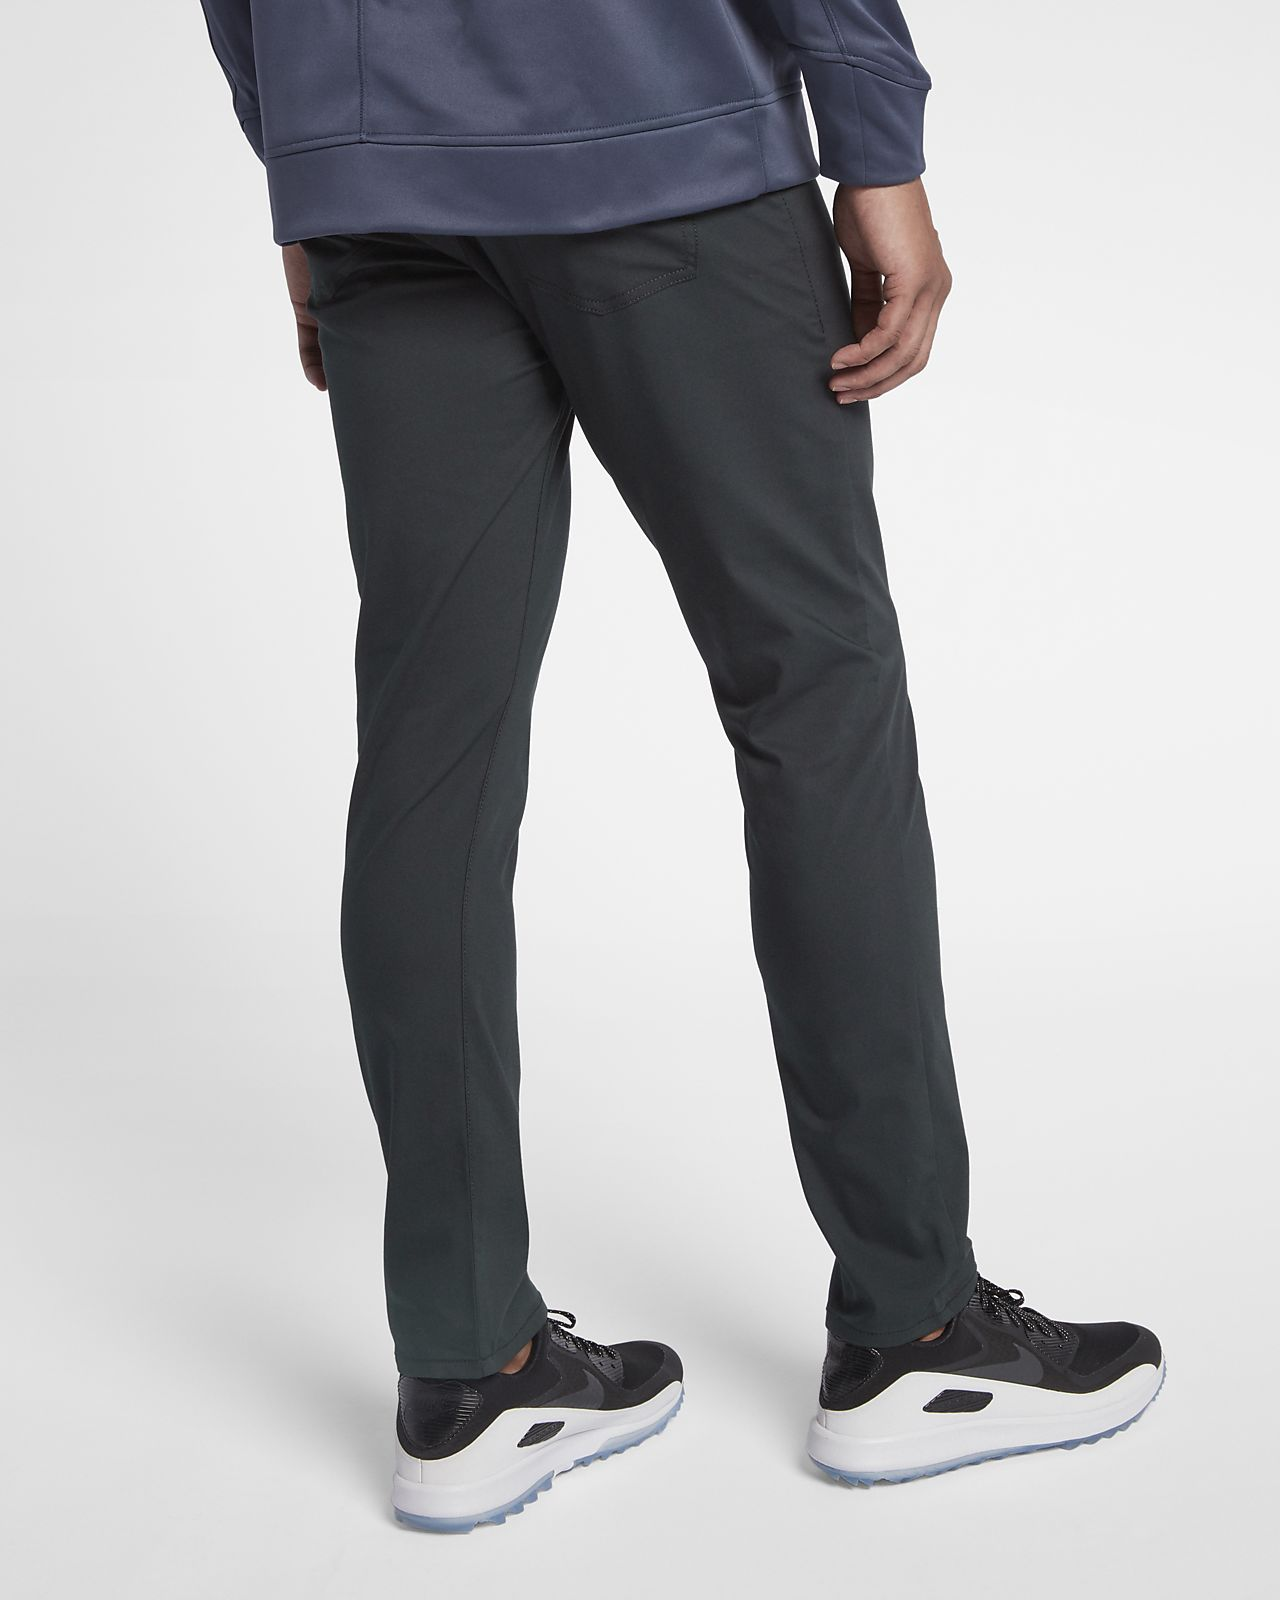 46fc57c997016 Nike Flex 5-Pocket Men's Slim-Fit Golf Pants. Nike.com MA